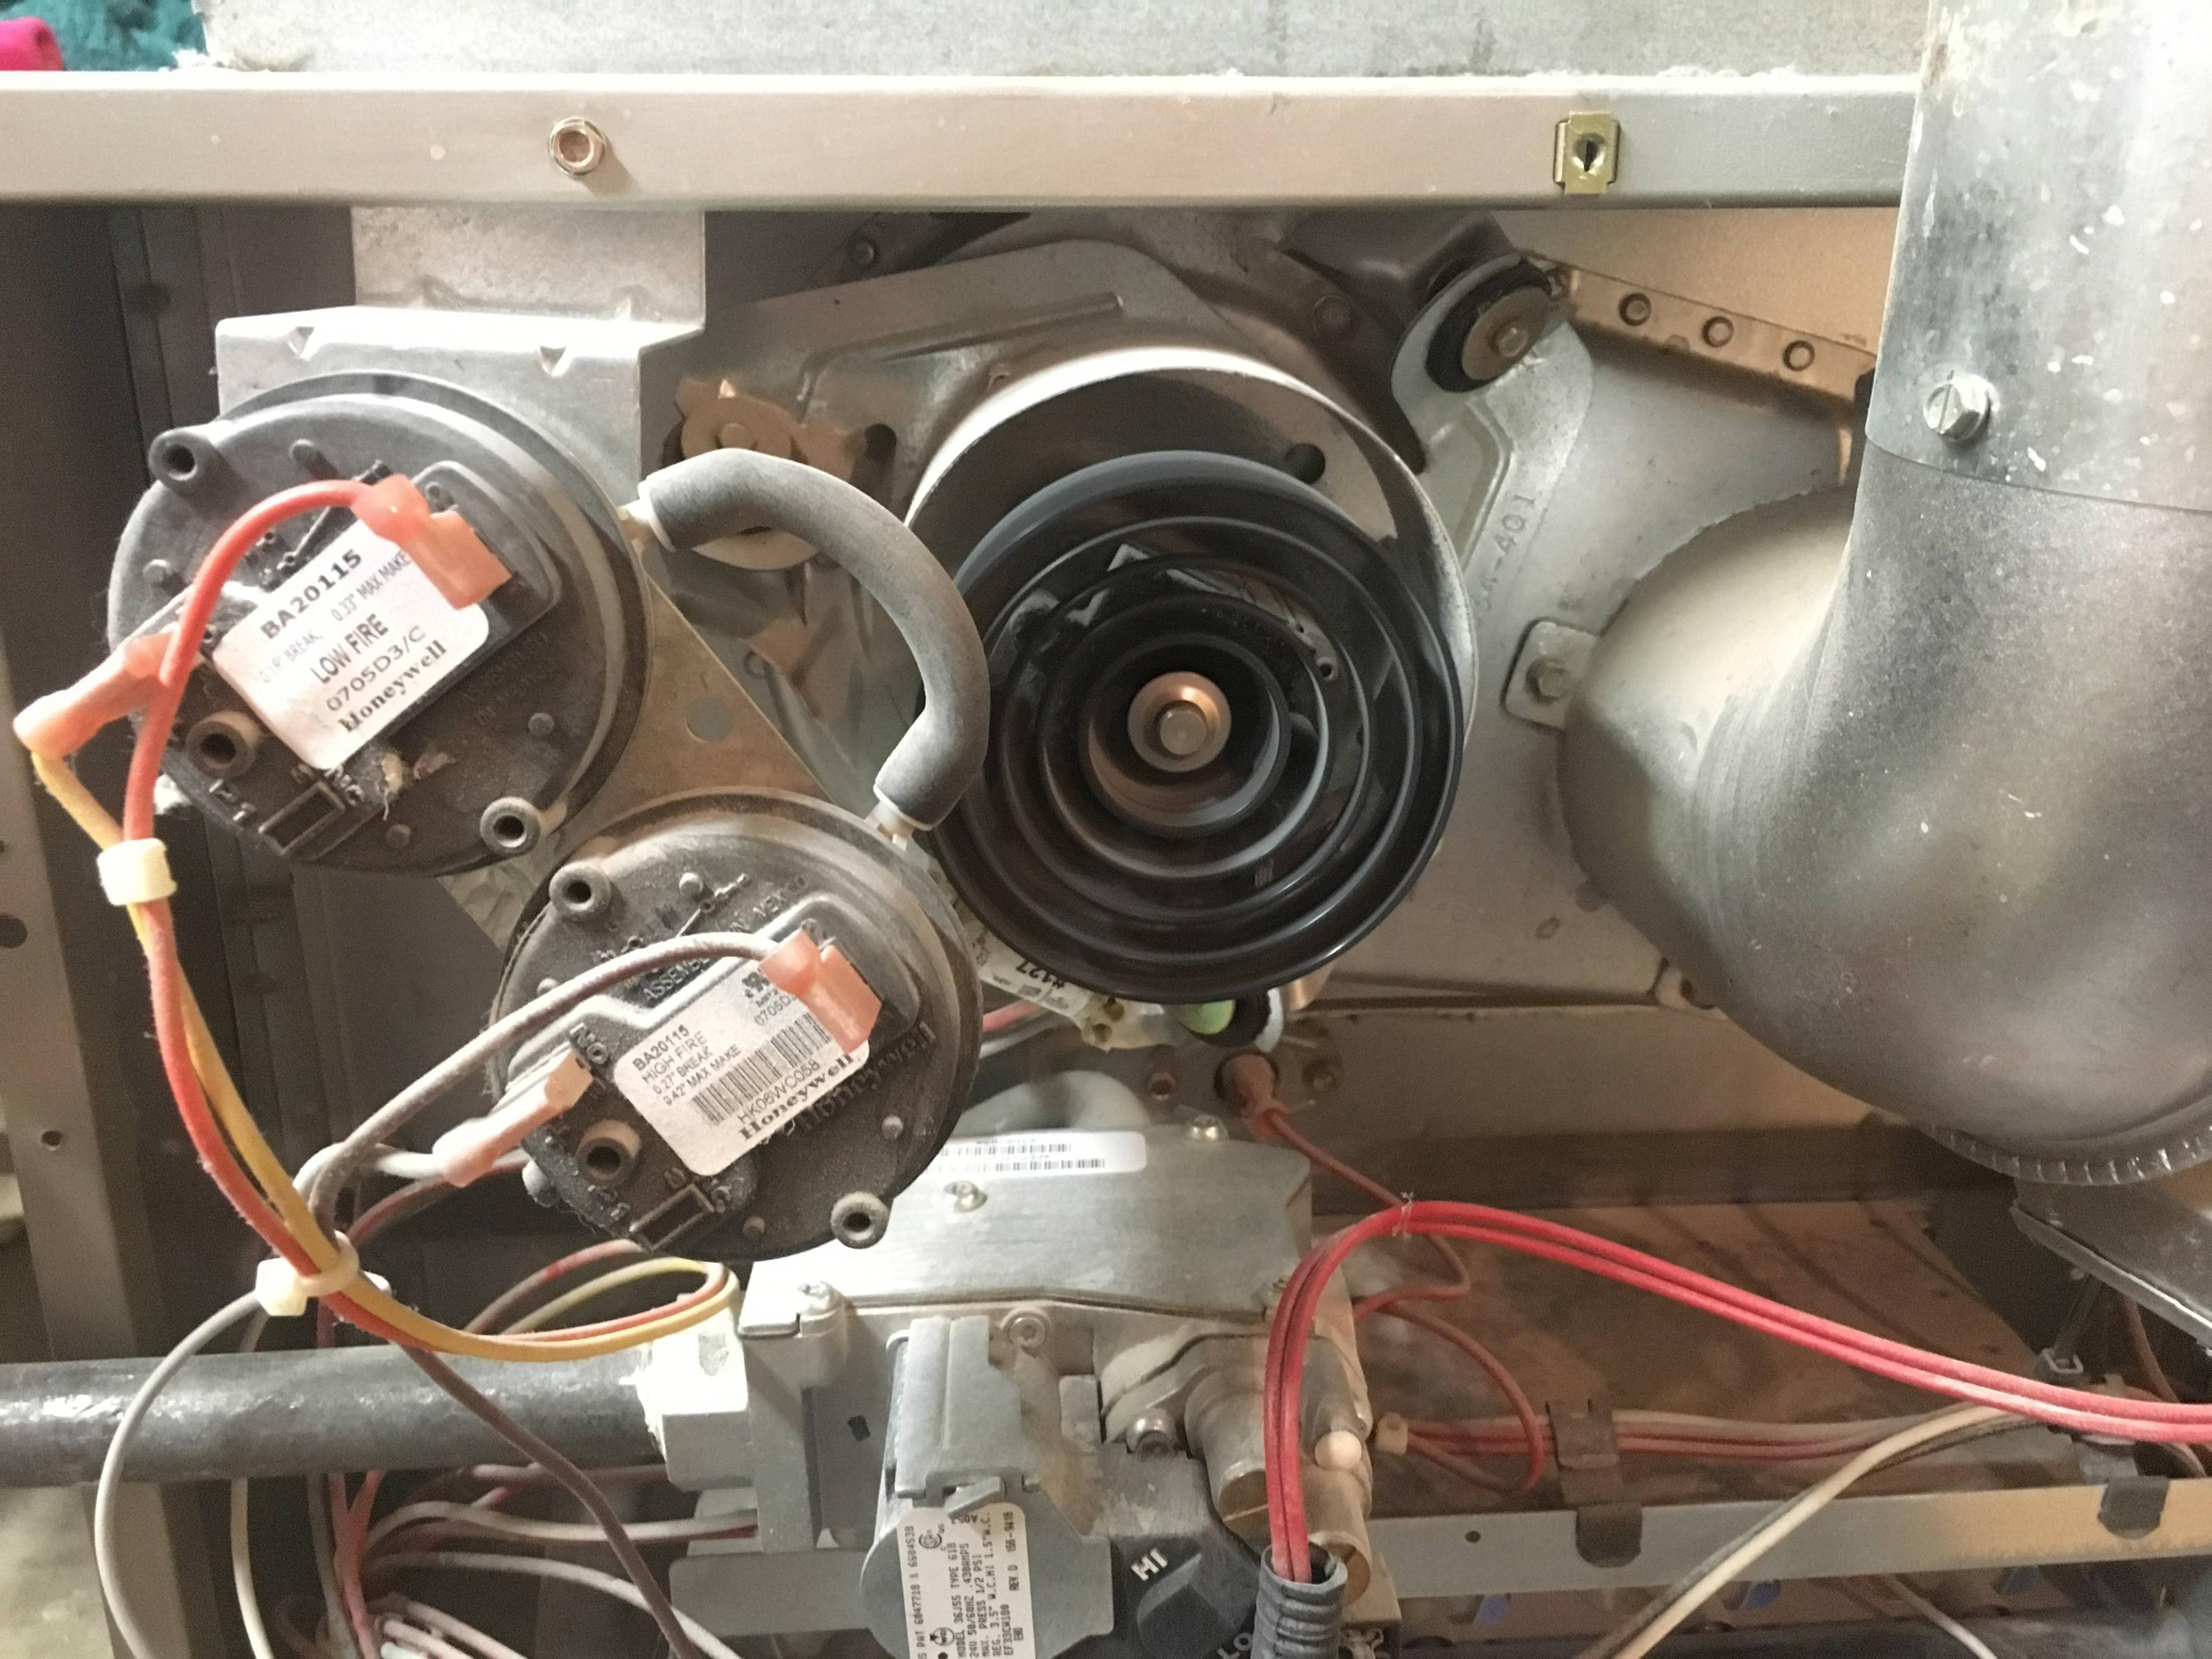 furnace blower humming when off extension cord plug wiring diagram fan intermittent high pitch sound home improvement stack small